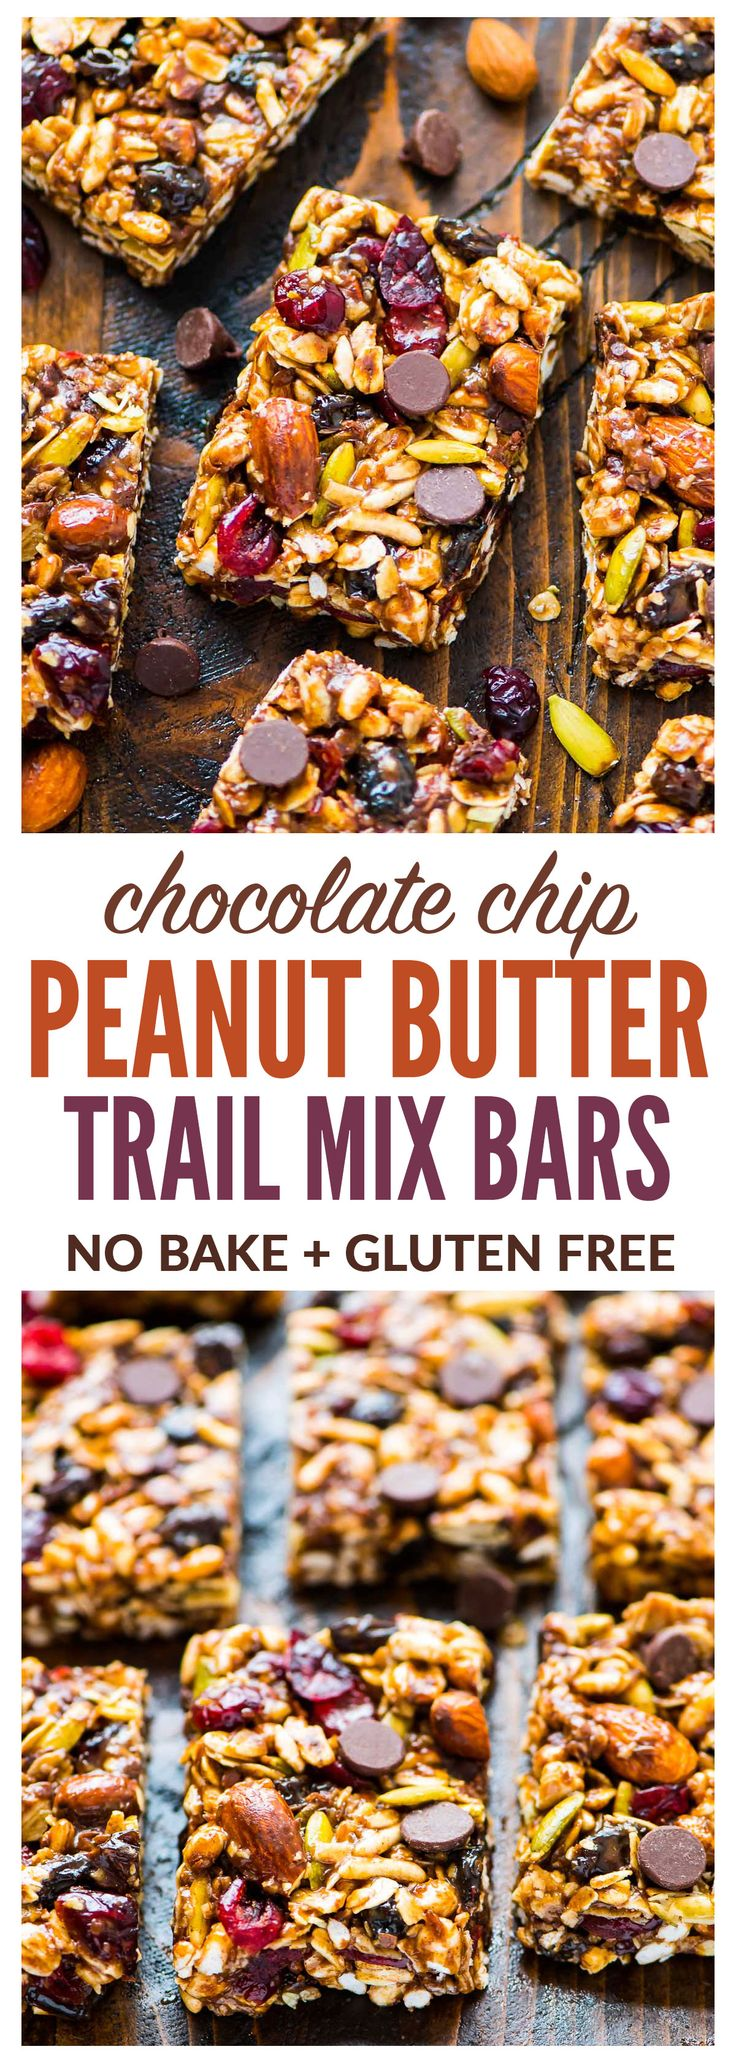 Chewy Trail Mix Peanut Butter Granola Bars with chocolate chips, oatmeal, and honey. Sweet, salty, and NO BAKE! Simple recipe that's perfect for healthy breakfasts and healthy snacks. {gluten free, dairy free, vegan, high protein} Recipe at wellplated.com   @wellplated